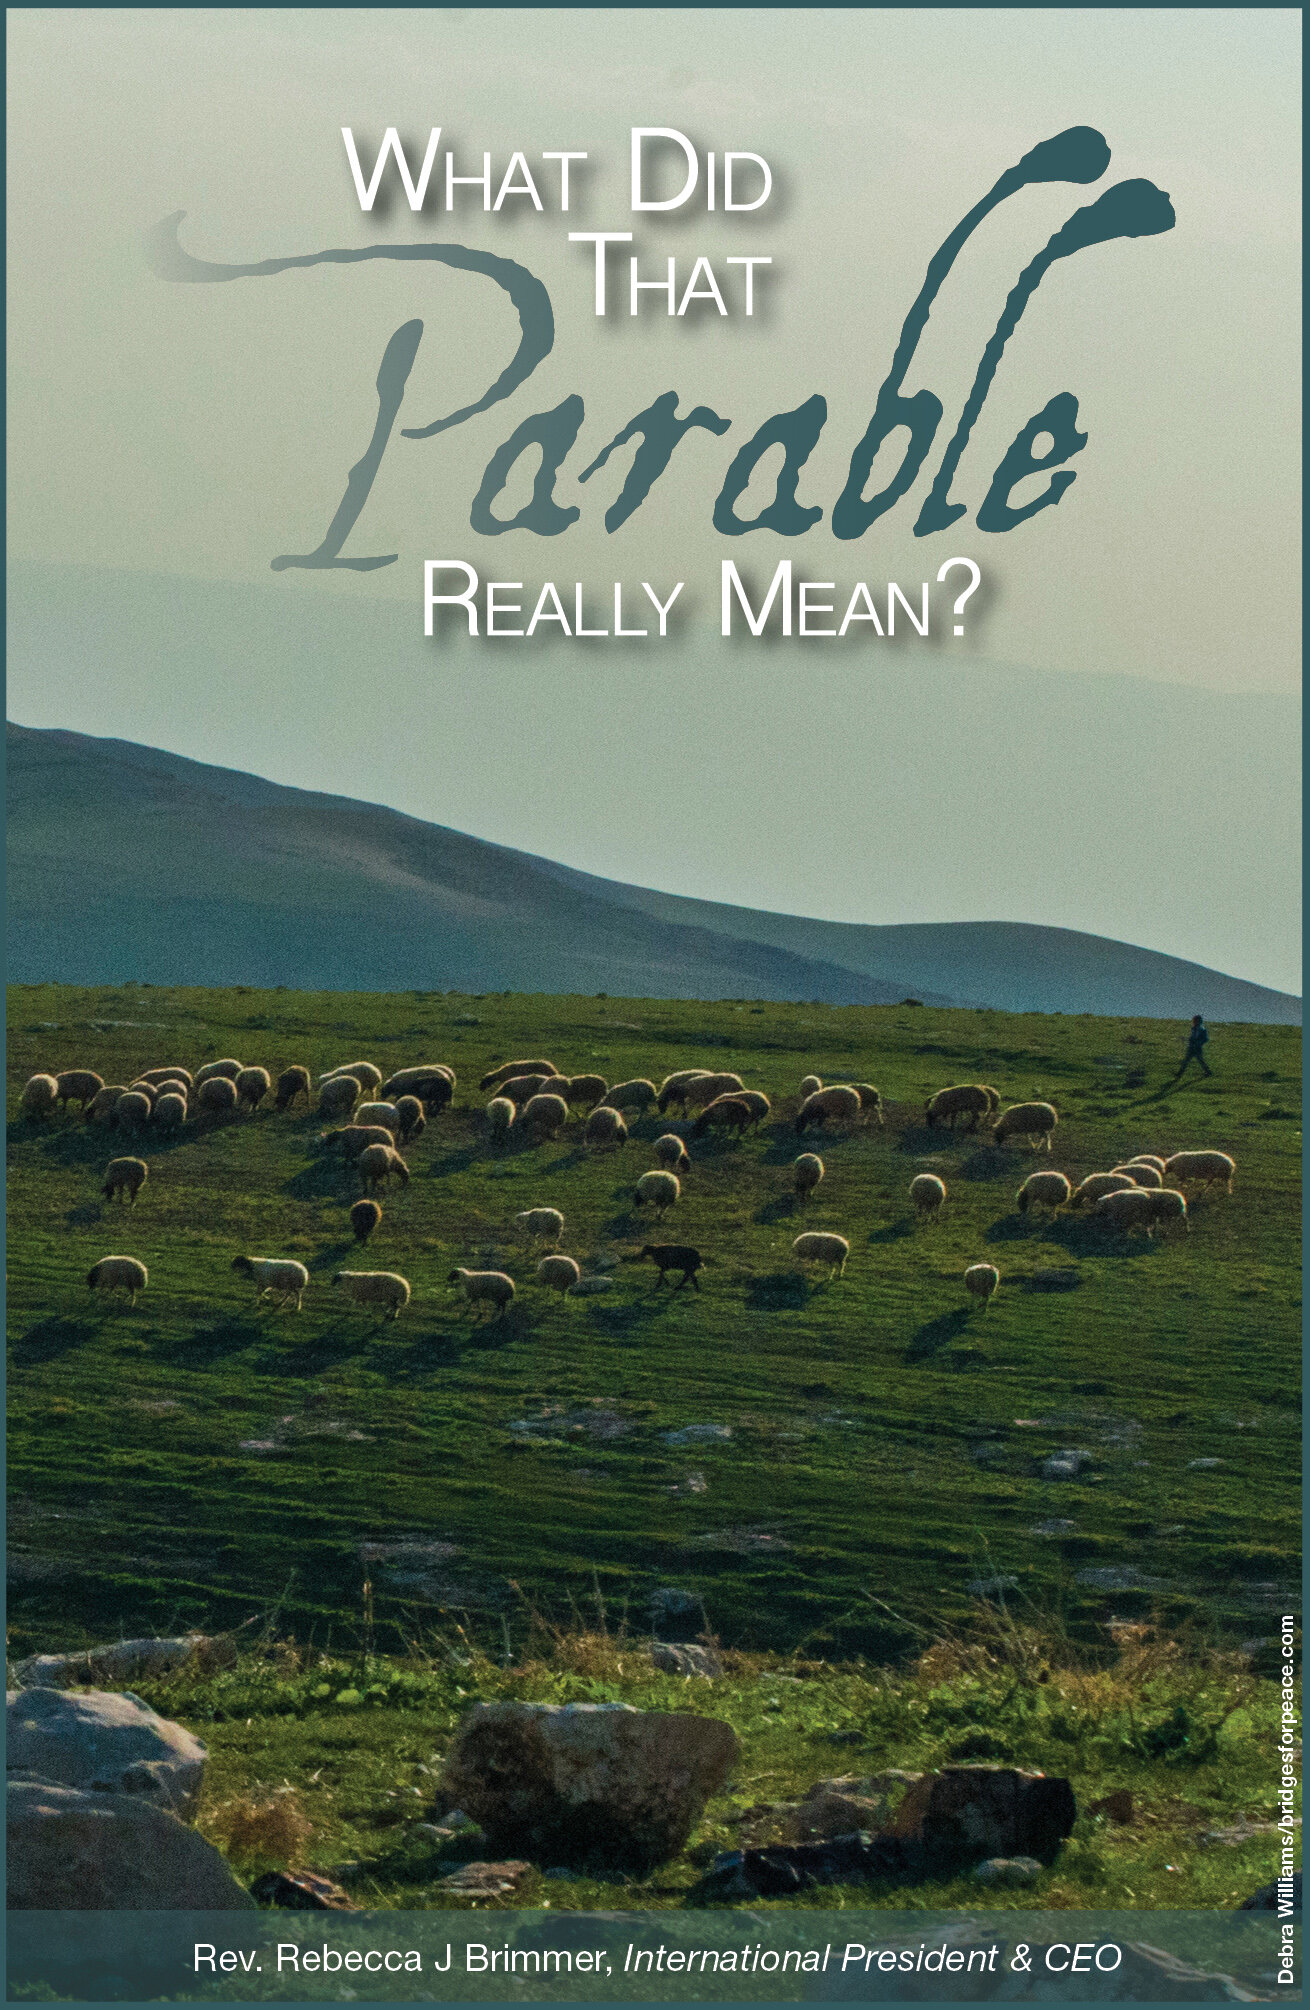 """Generally, when we think of parables we think of Yeshua's use of them. However, He did not invent the parable. It was a communication tool used by other rabbis of the era. In Hebrew it is called a  mashal  and can mean proverbs, fictional stories, poems, fables, riddles or allegories. David Stern, an authority on rabbinic parables says, """"above all else, the  mashal  represents the greatest effort to imagine God in all rabbinic literature."""""""